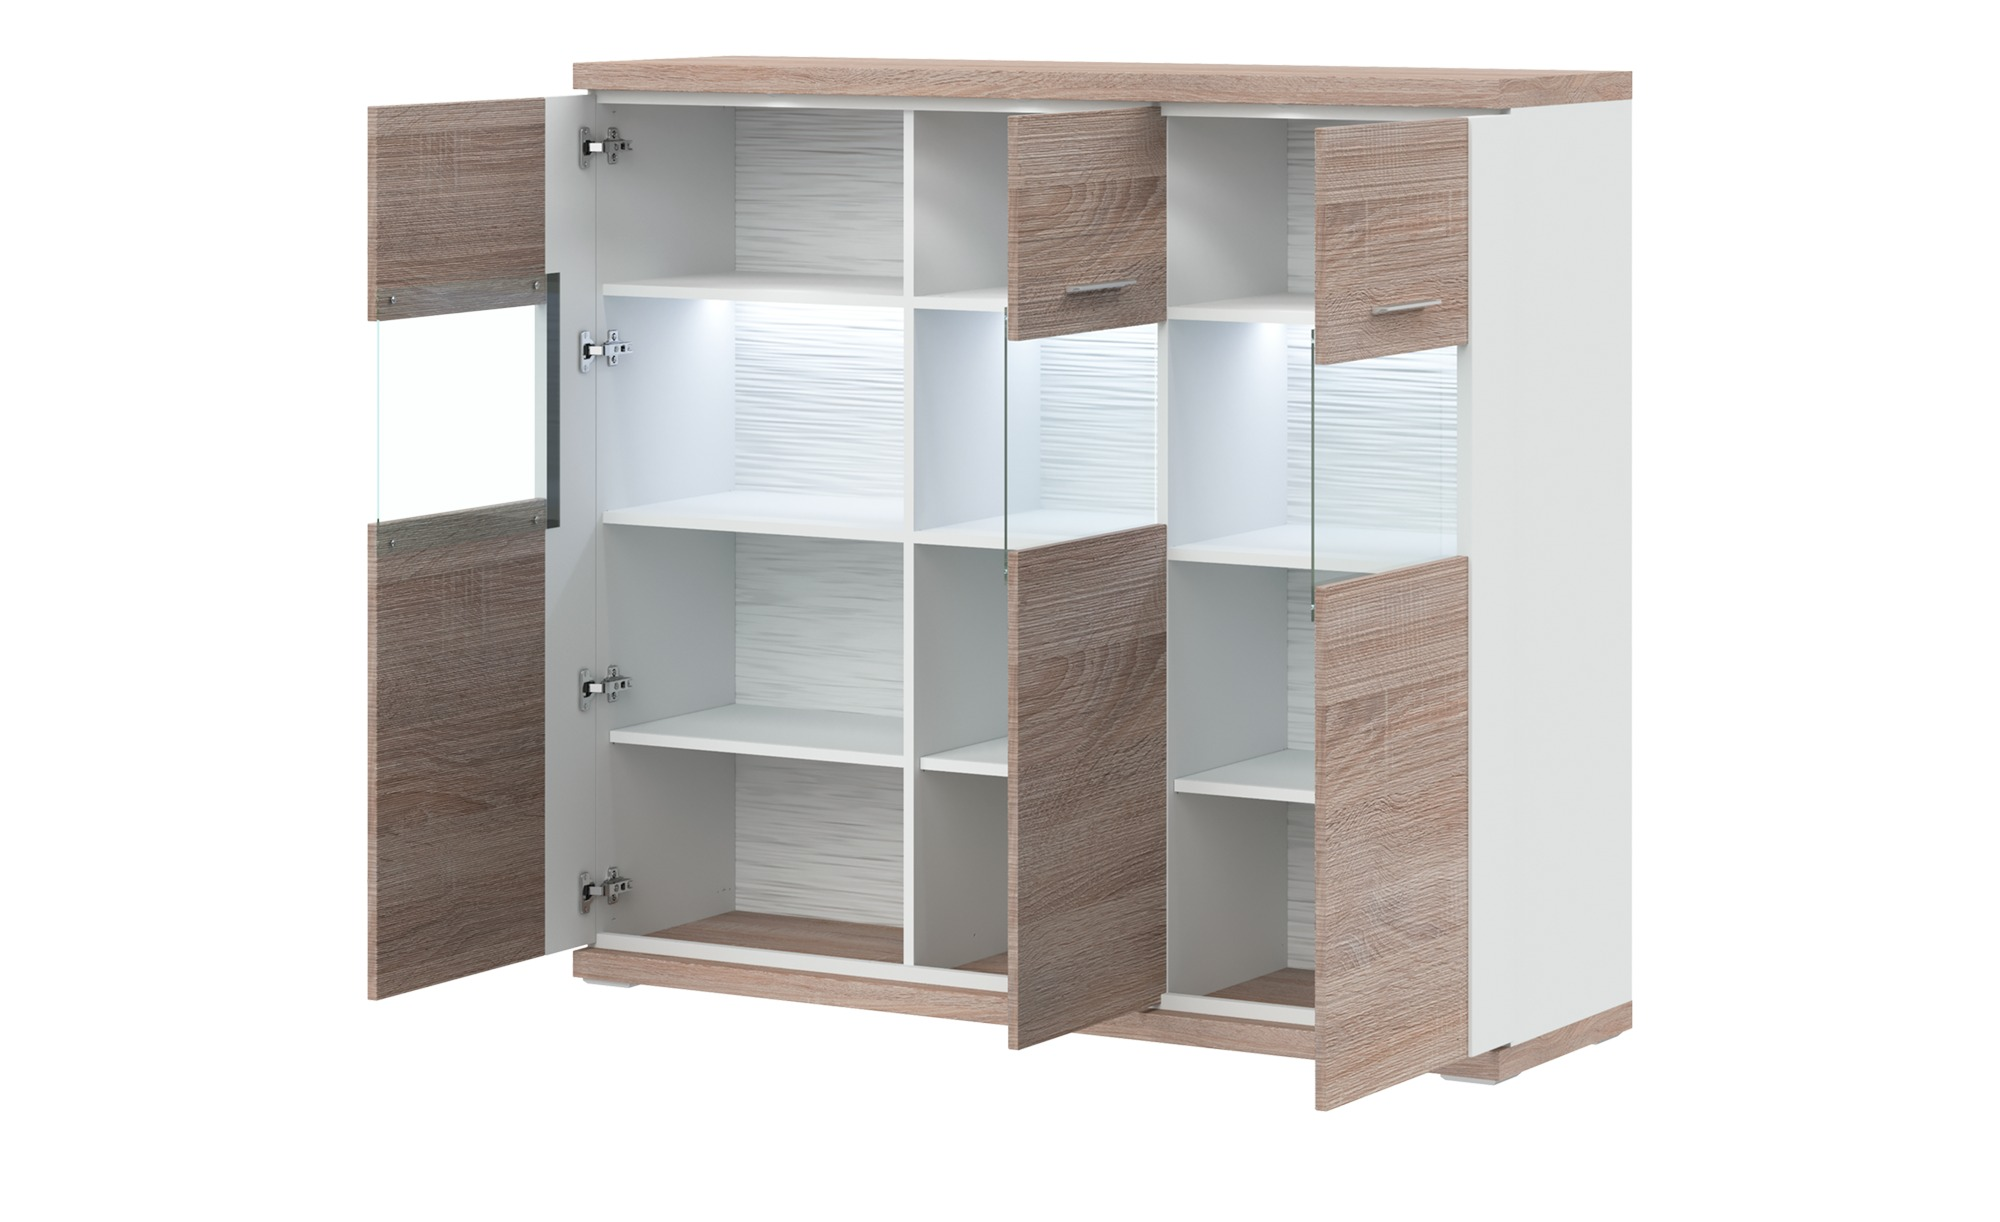 uno Highboard   Titan ¦ Maße (cm): B: 146 H: 131 T: 42 Kommoden & Sideboards > Highboards - Höffner